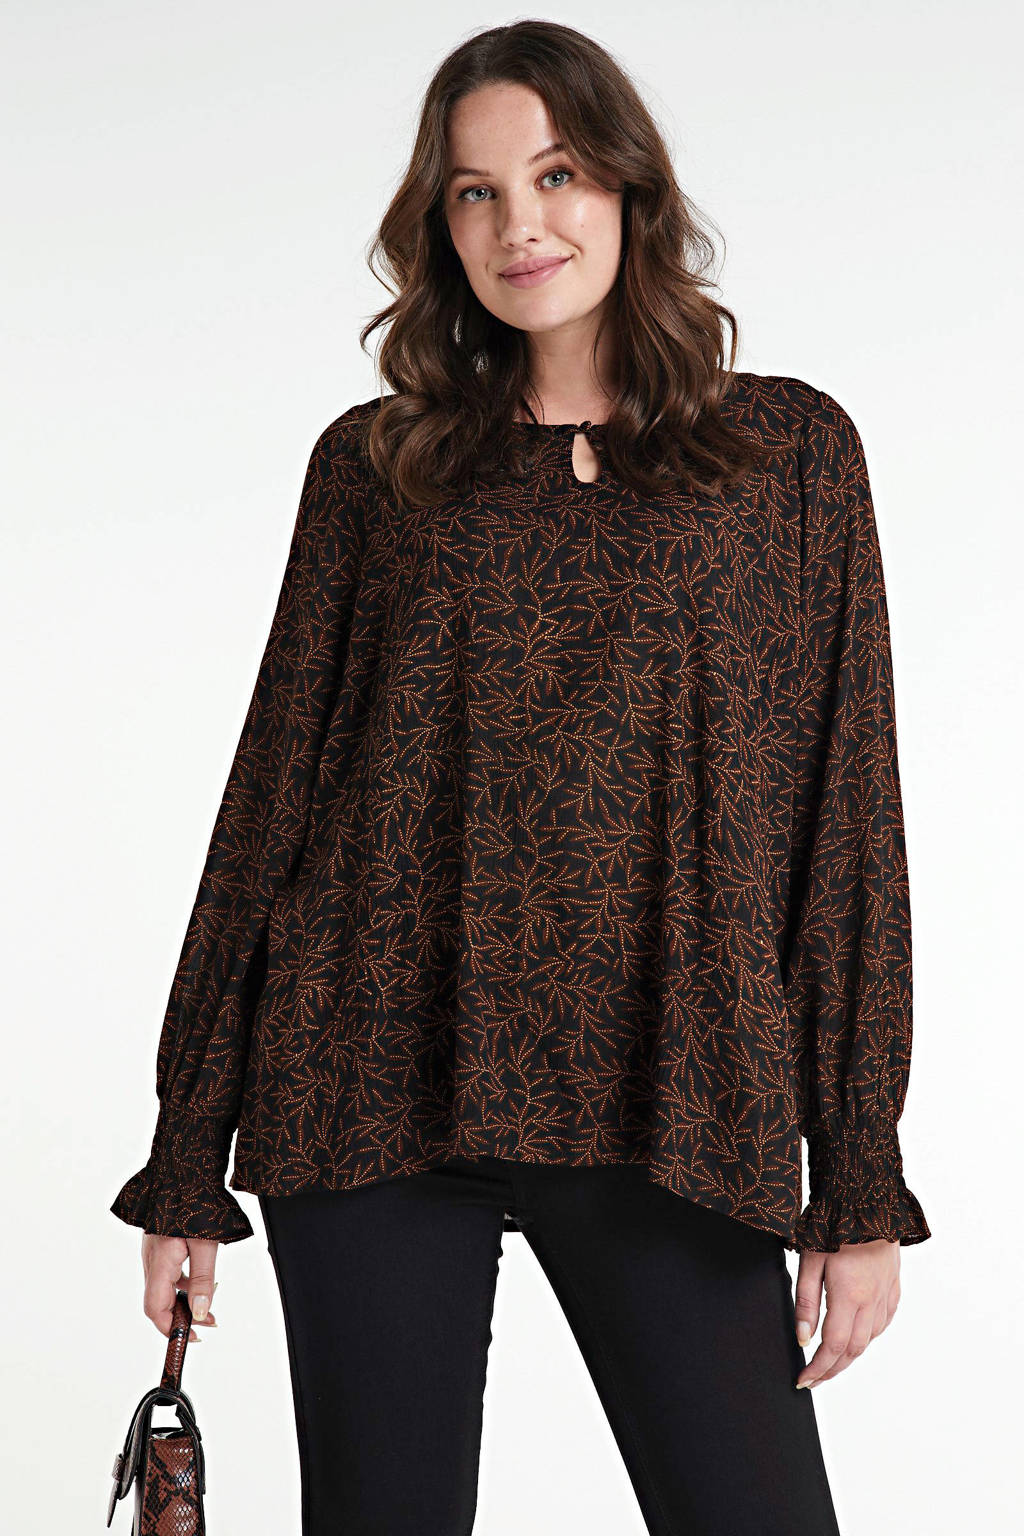 Zhenzi top Iras met all over print en open detail zwart/bruin, Zwart/bruin